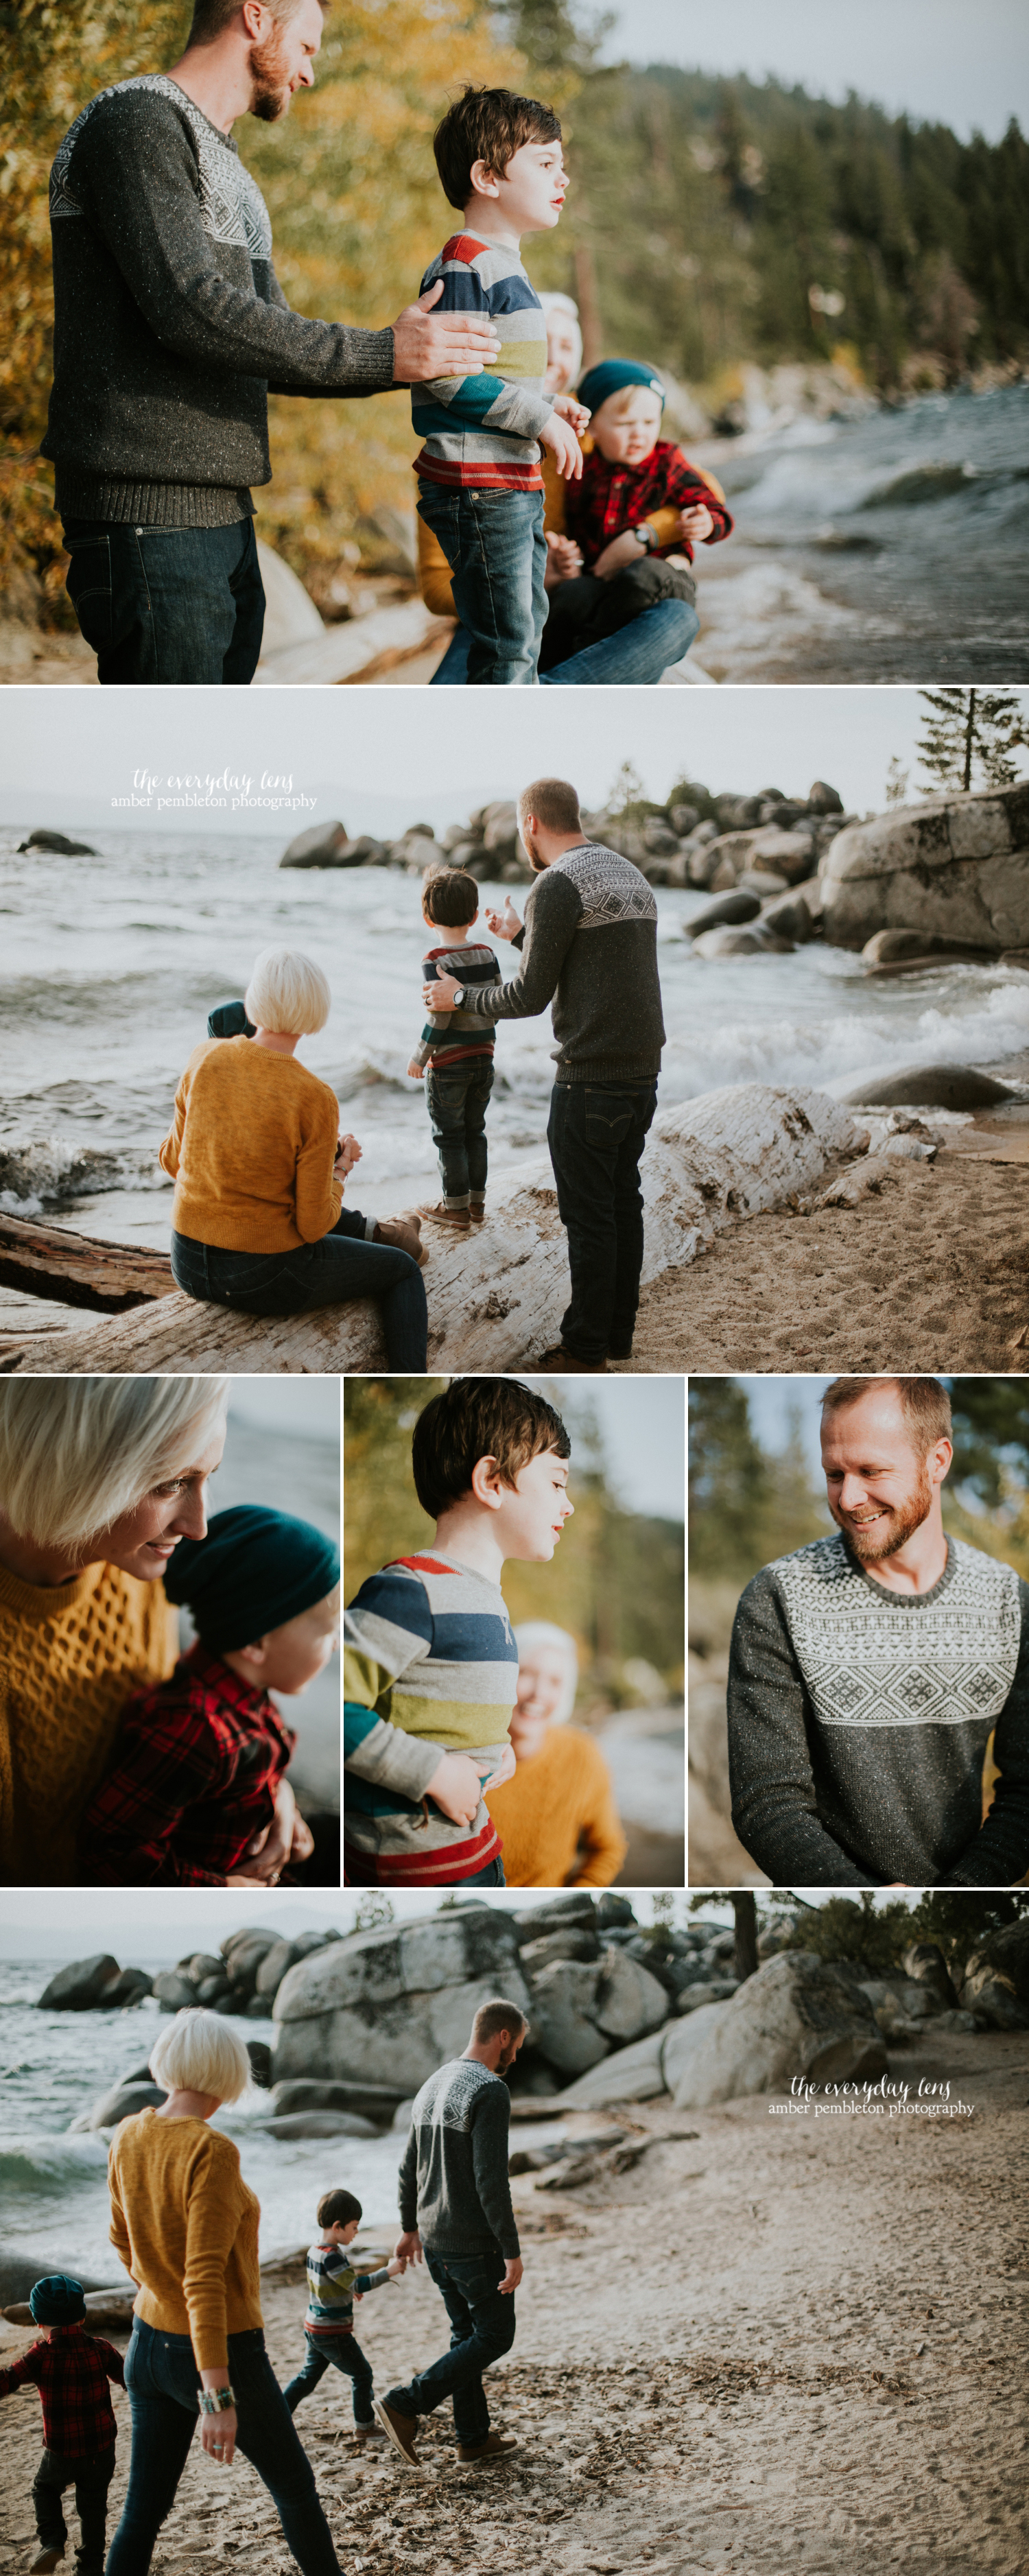 tahoe-fall-family-photo-session-chimney-beach 4.jpg